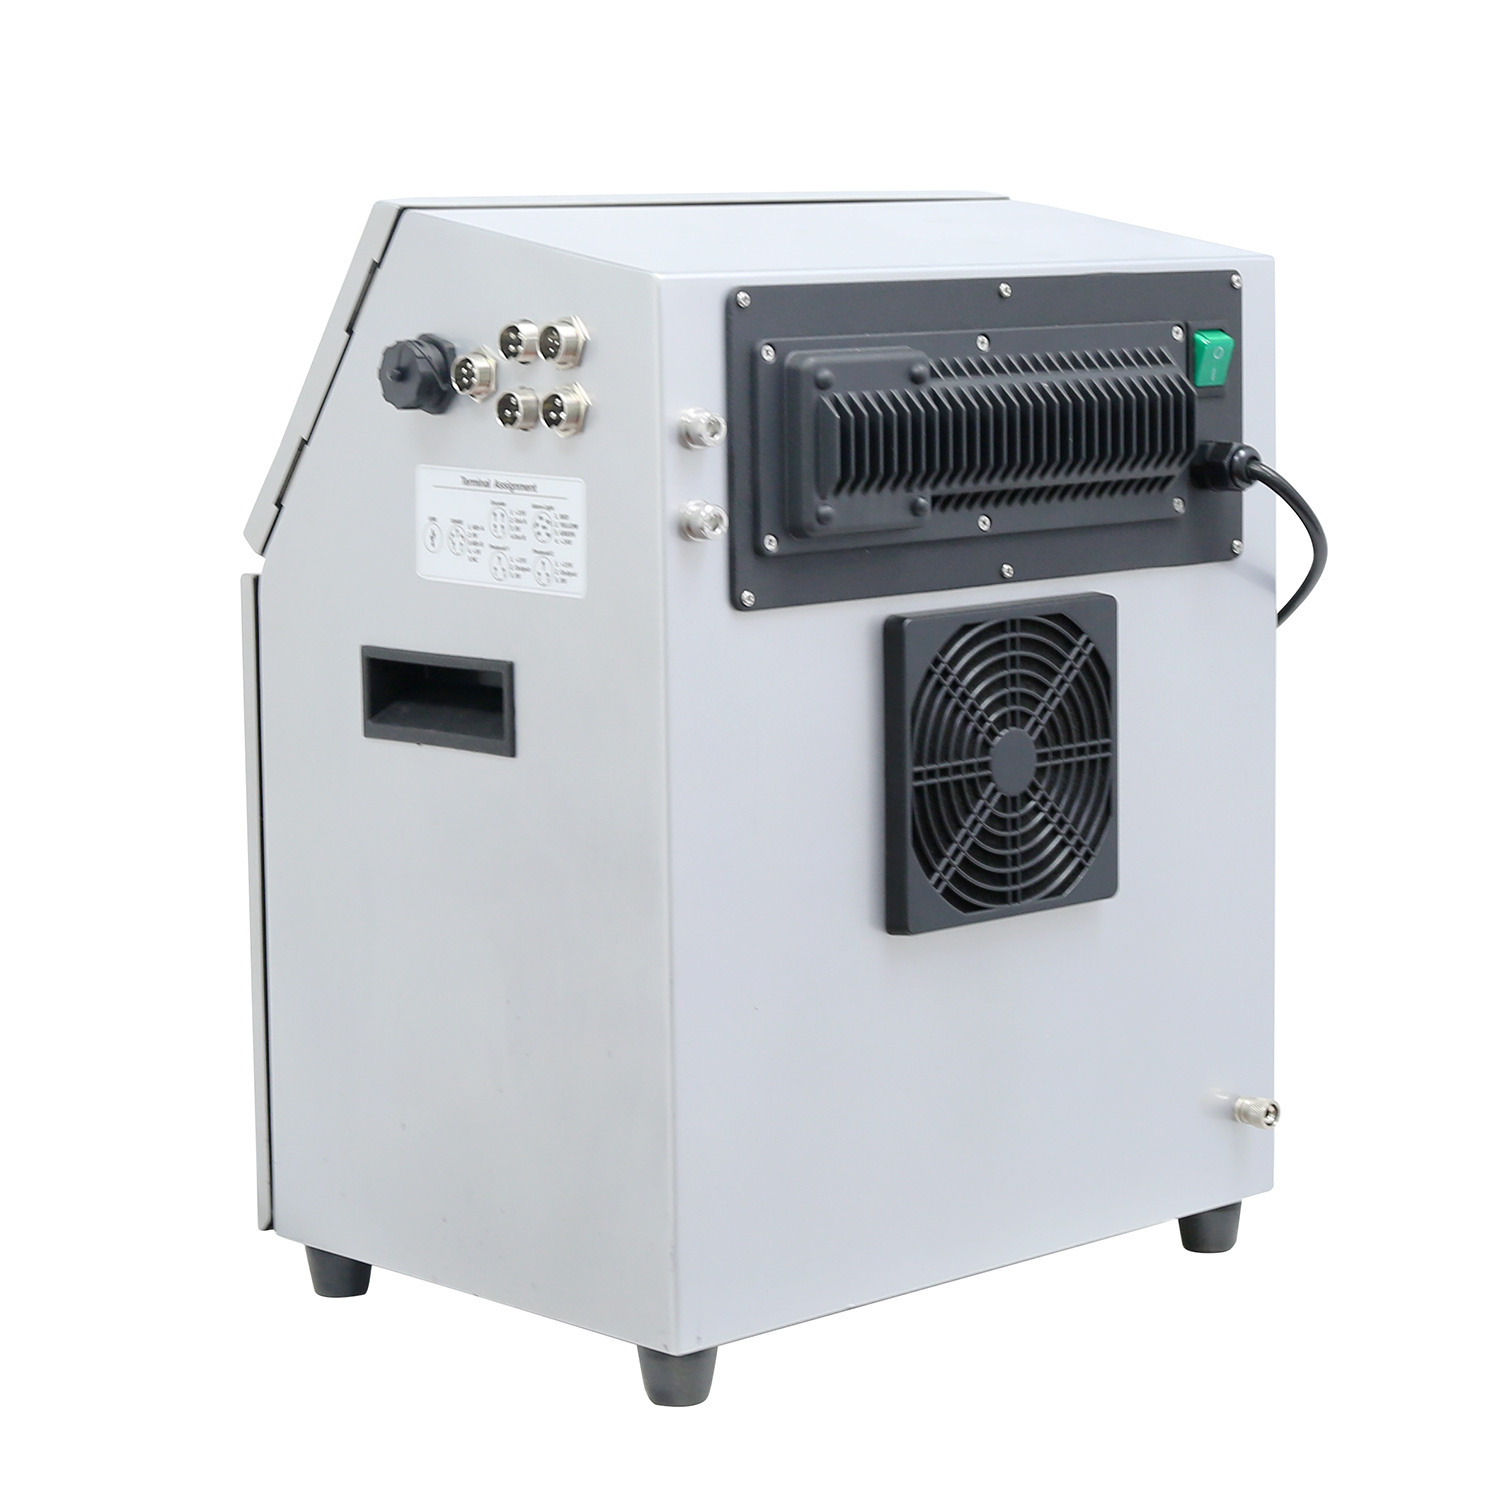 Lead Tech Lt800 Date and Time Printing Machine